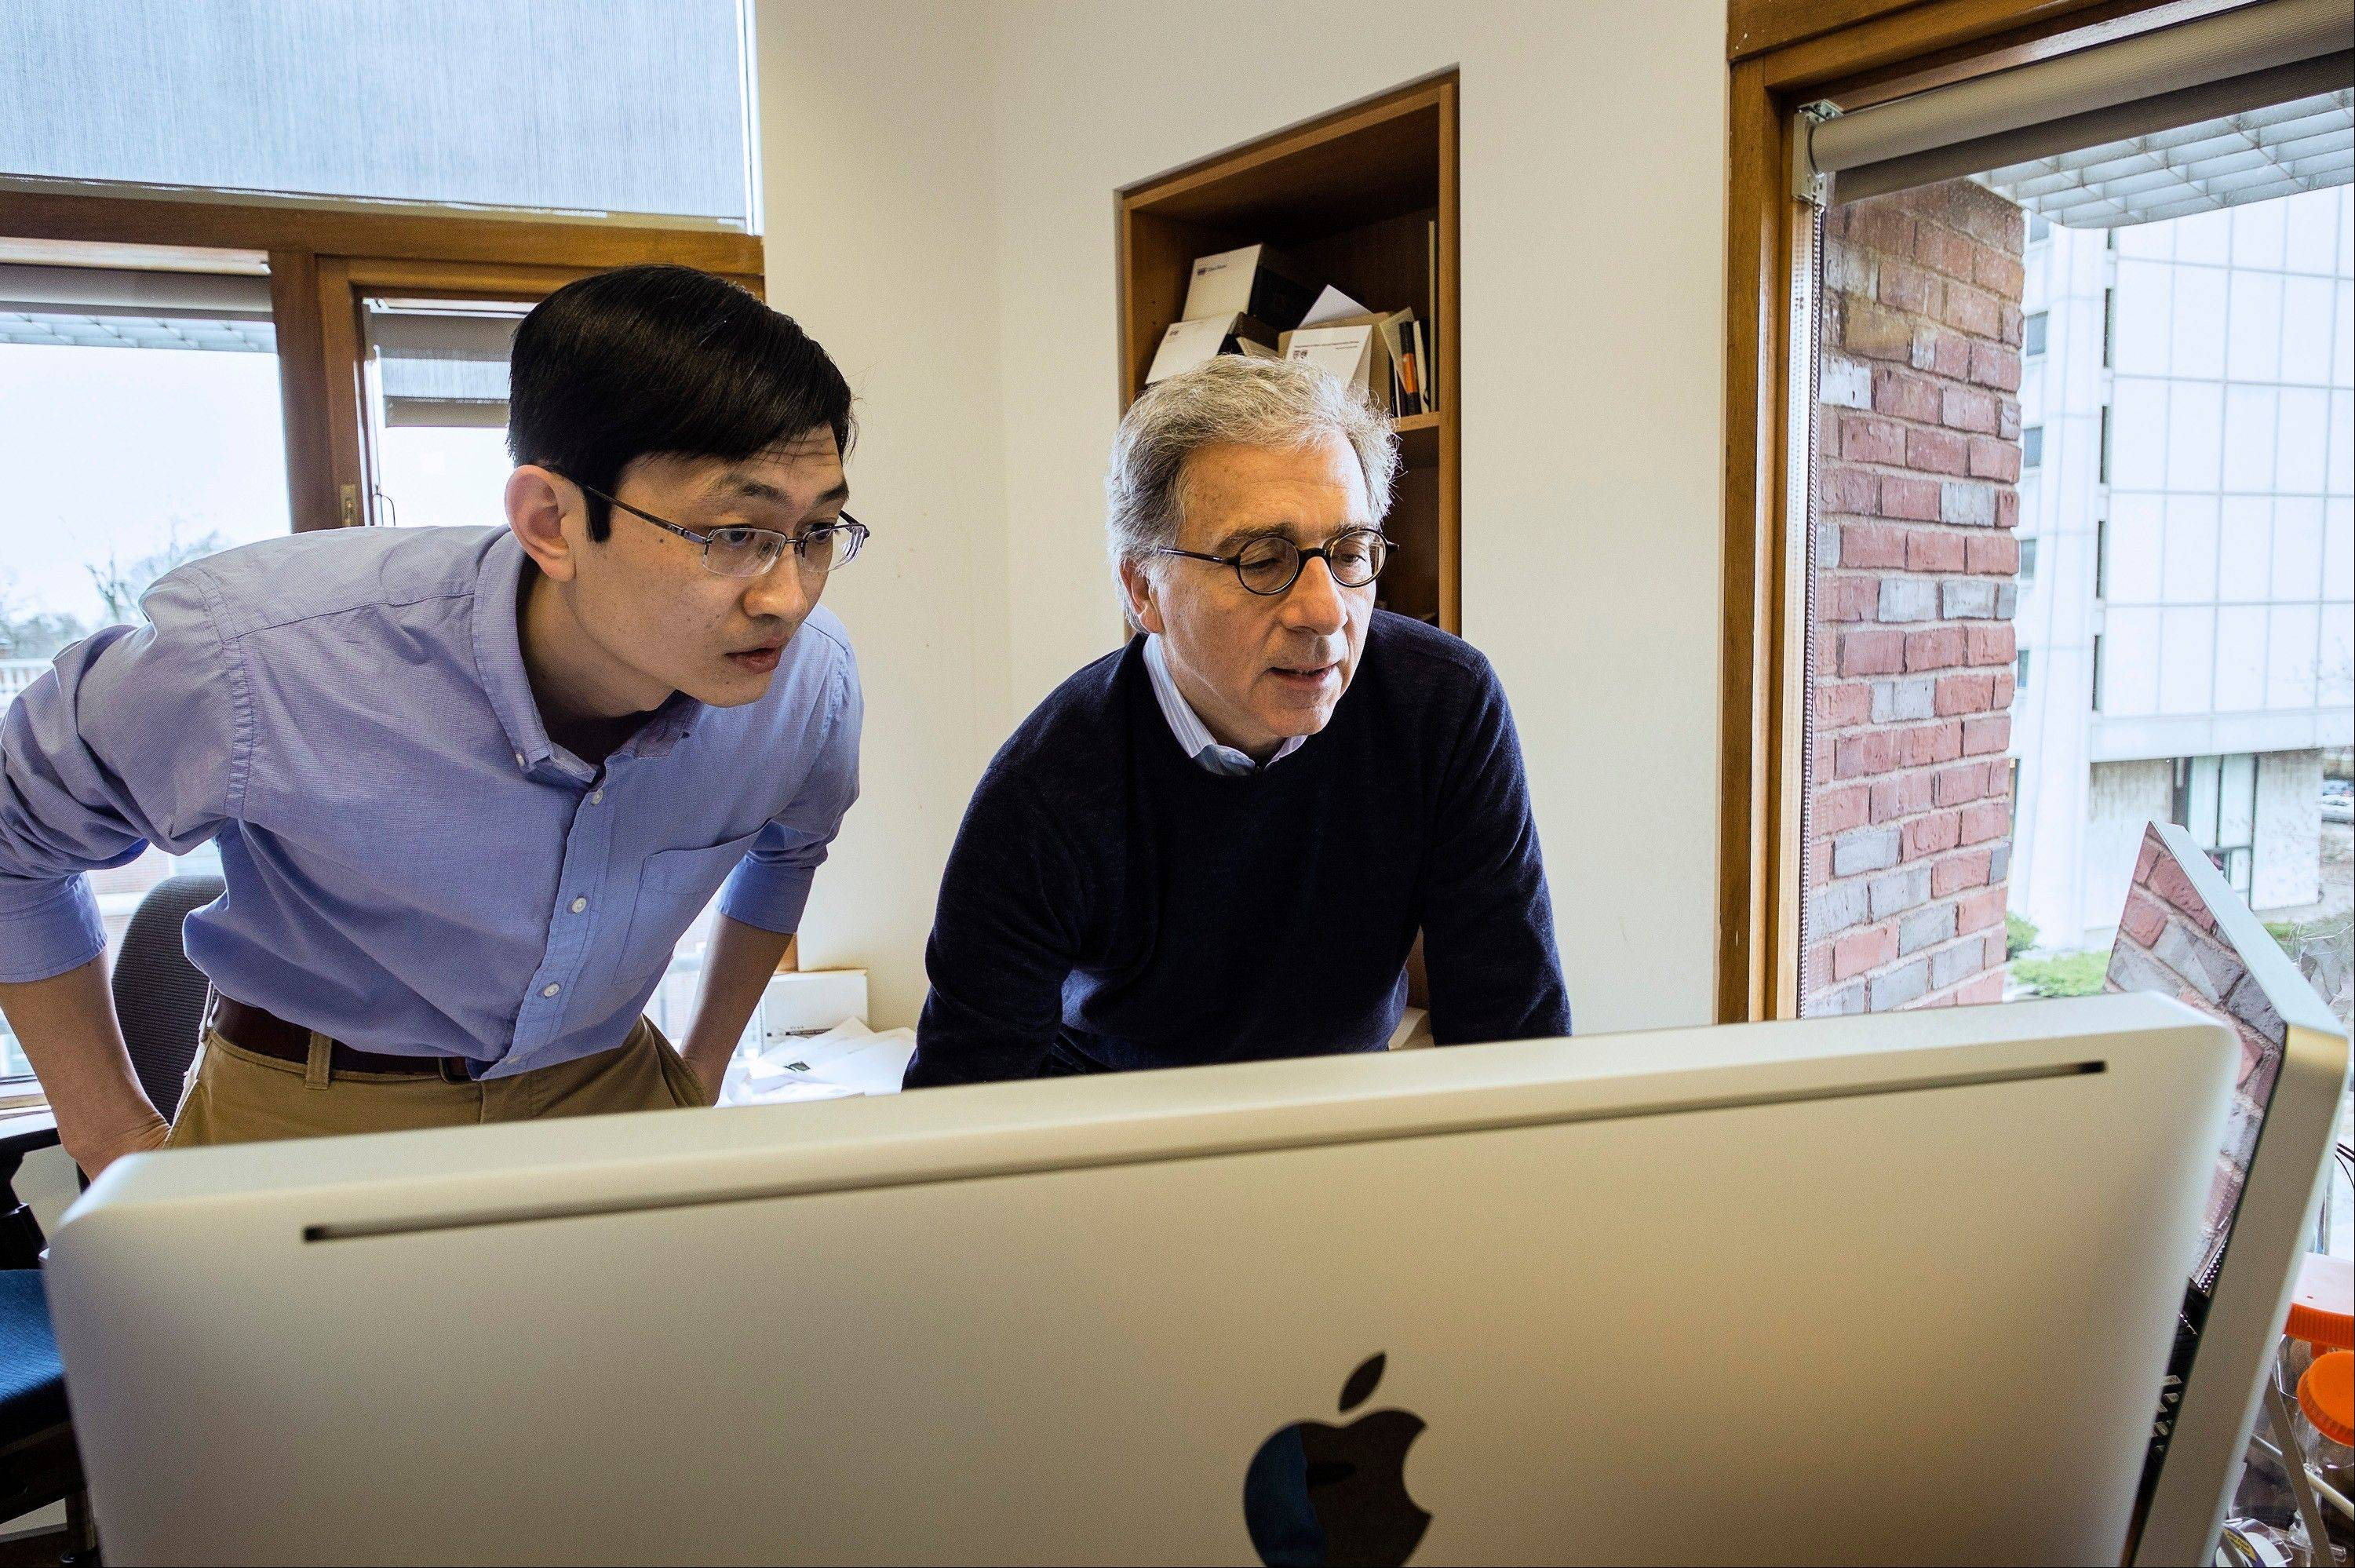 Harvard Stem Cell Institute Co-Director Doug Melton, right, and Peng Yi, a post doctoral fellow in his lab, review data from recent experiments in Melton's lab in Cambridge, Mass.